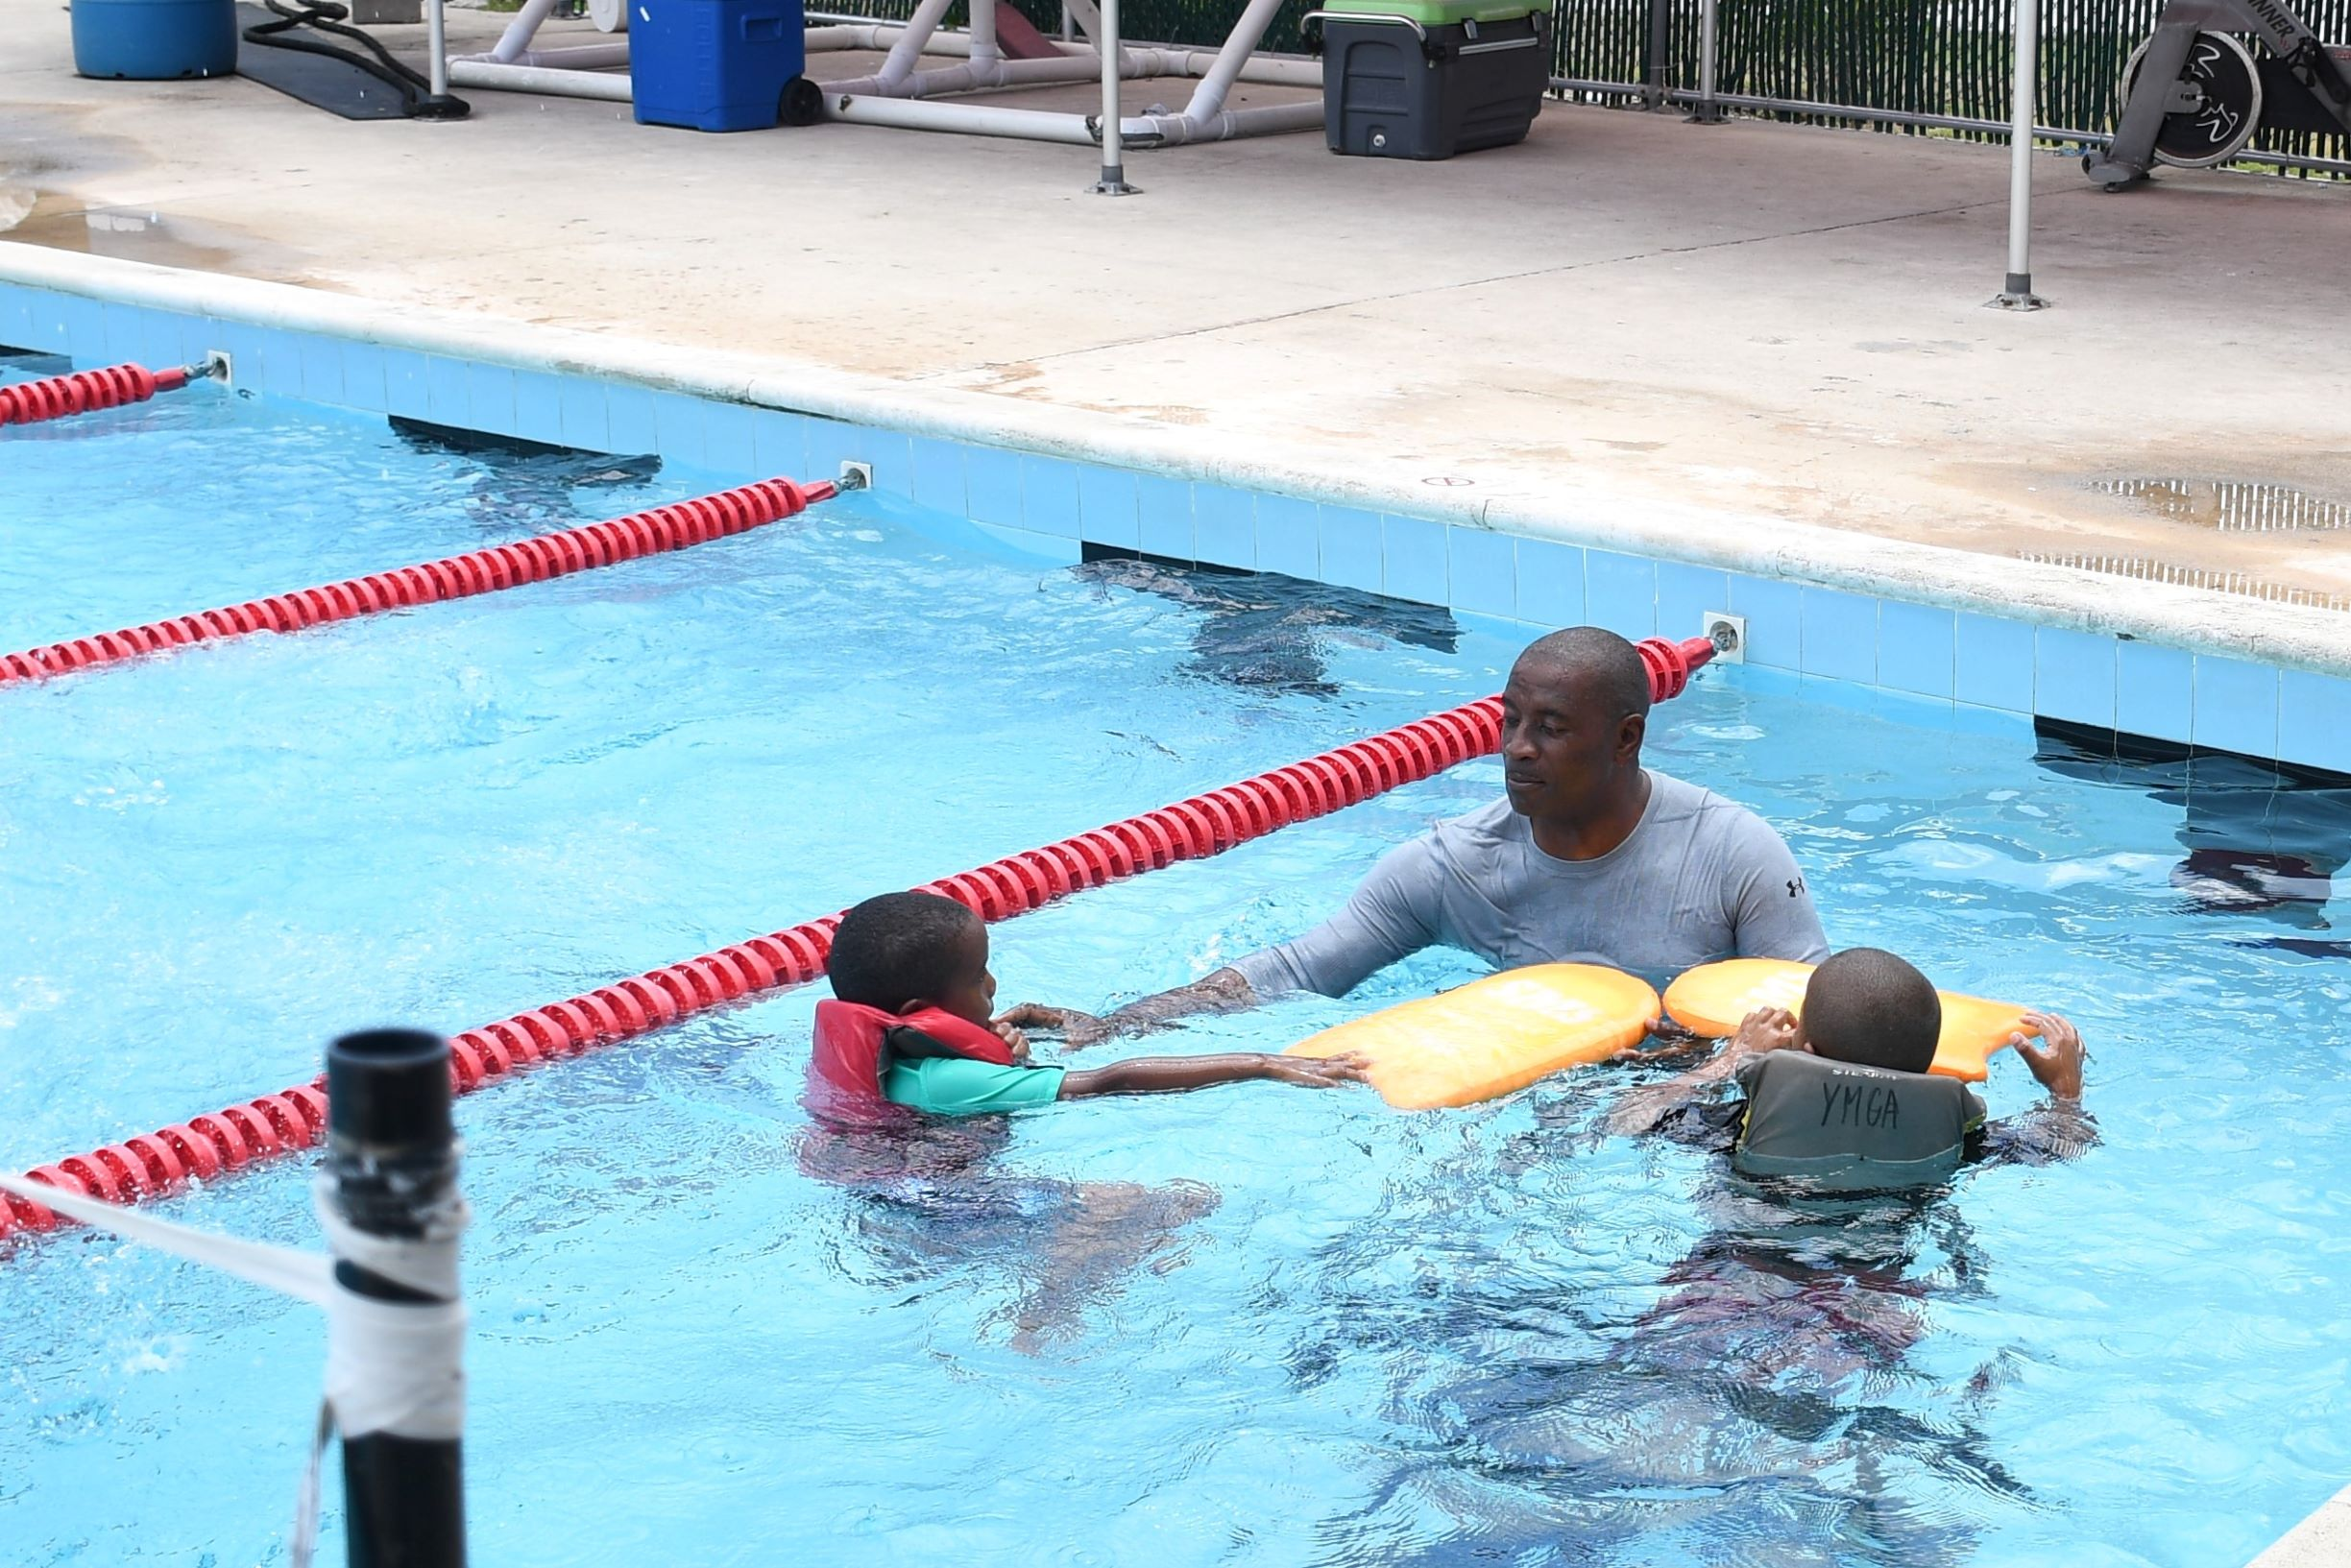 AC O'Connor gives swimming pointers to two of the students.